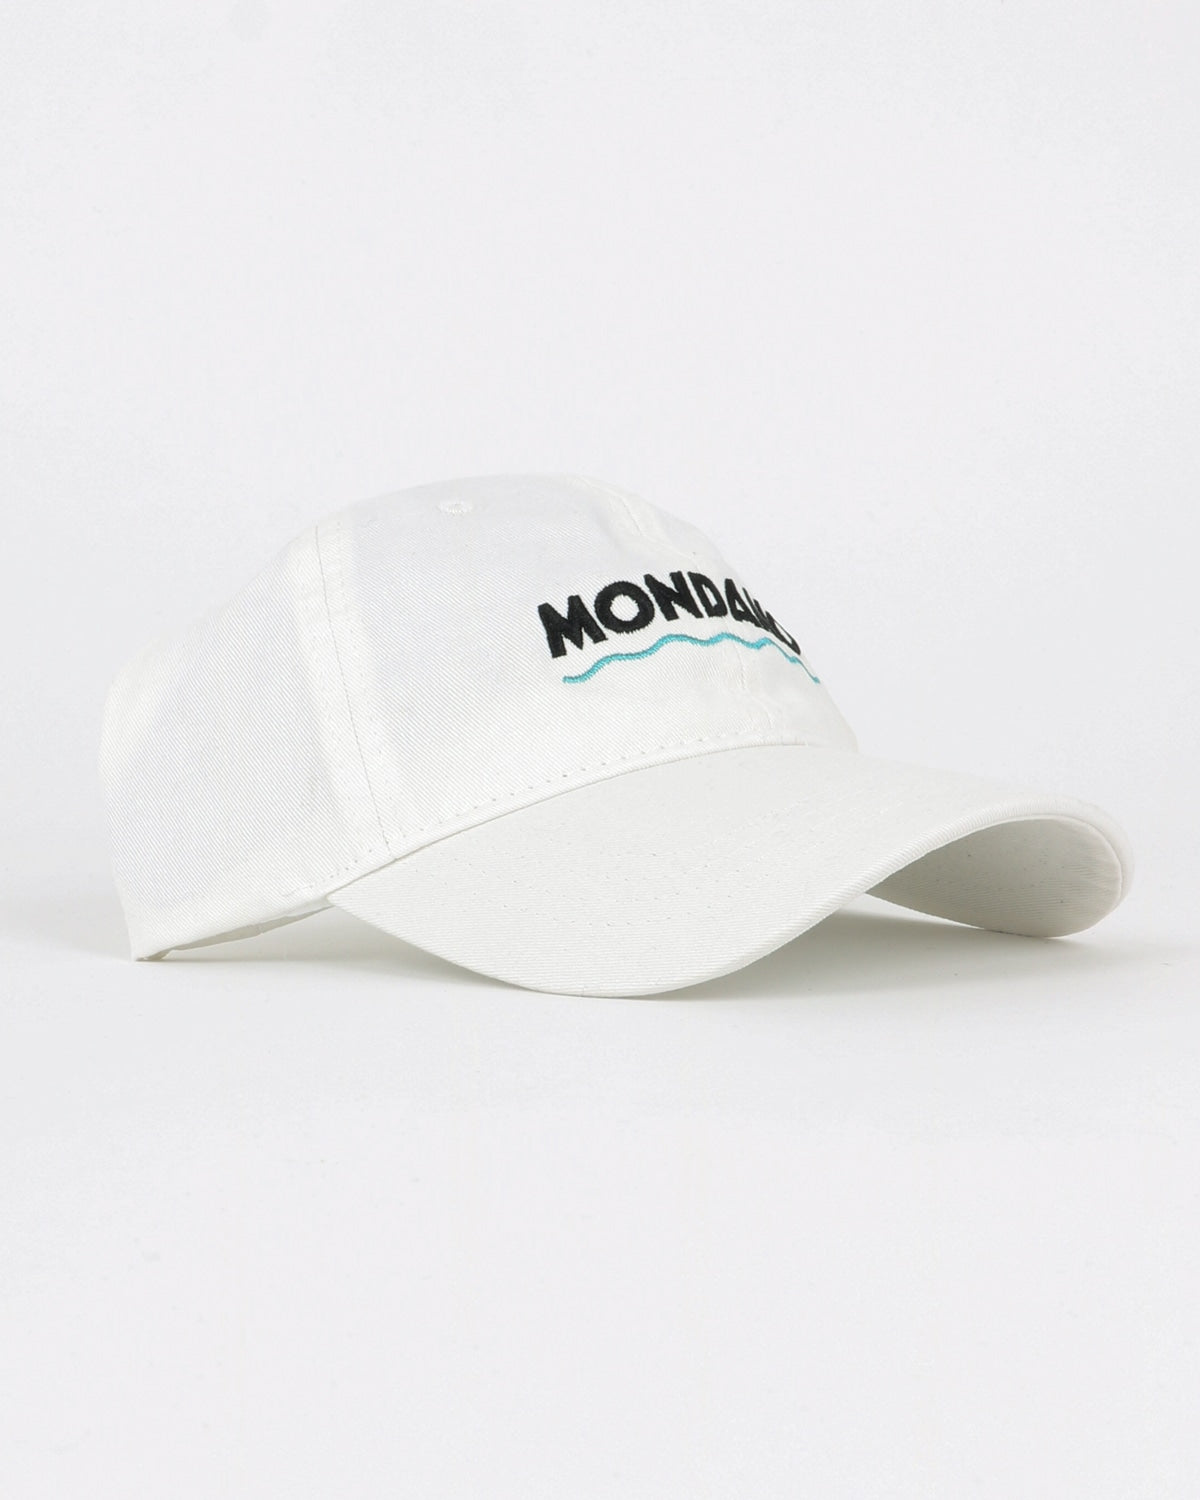 wood wood_low profile cap_mondano_white_1_2